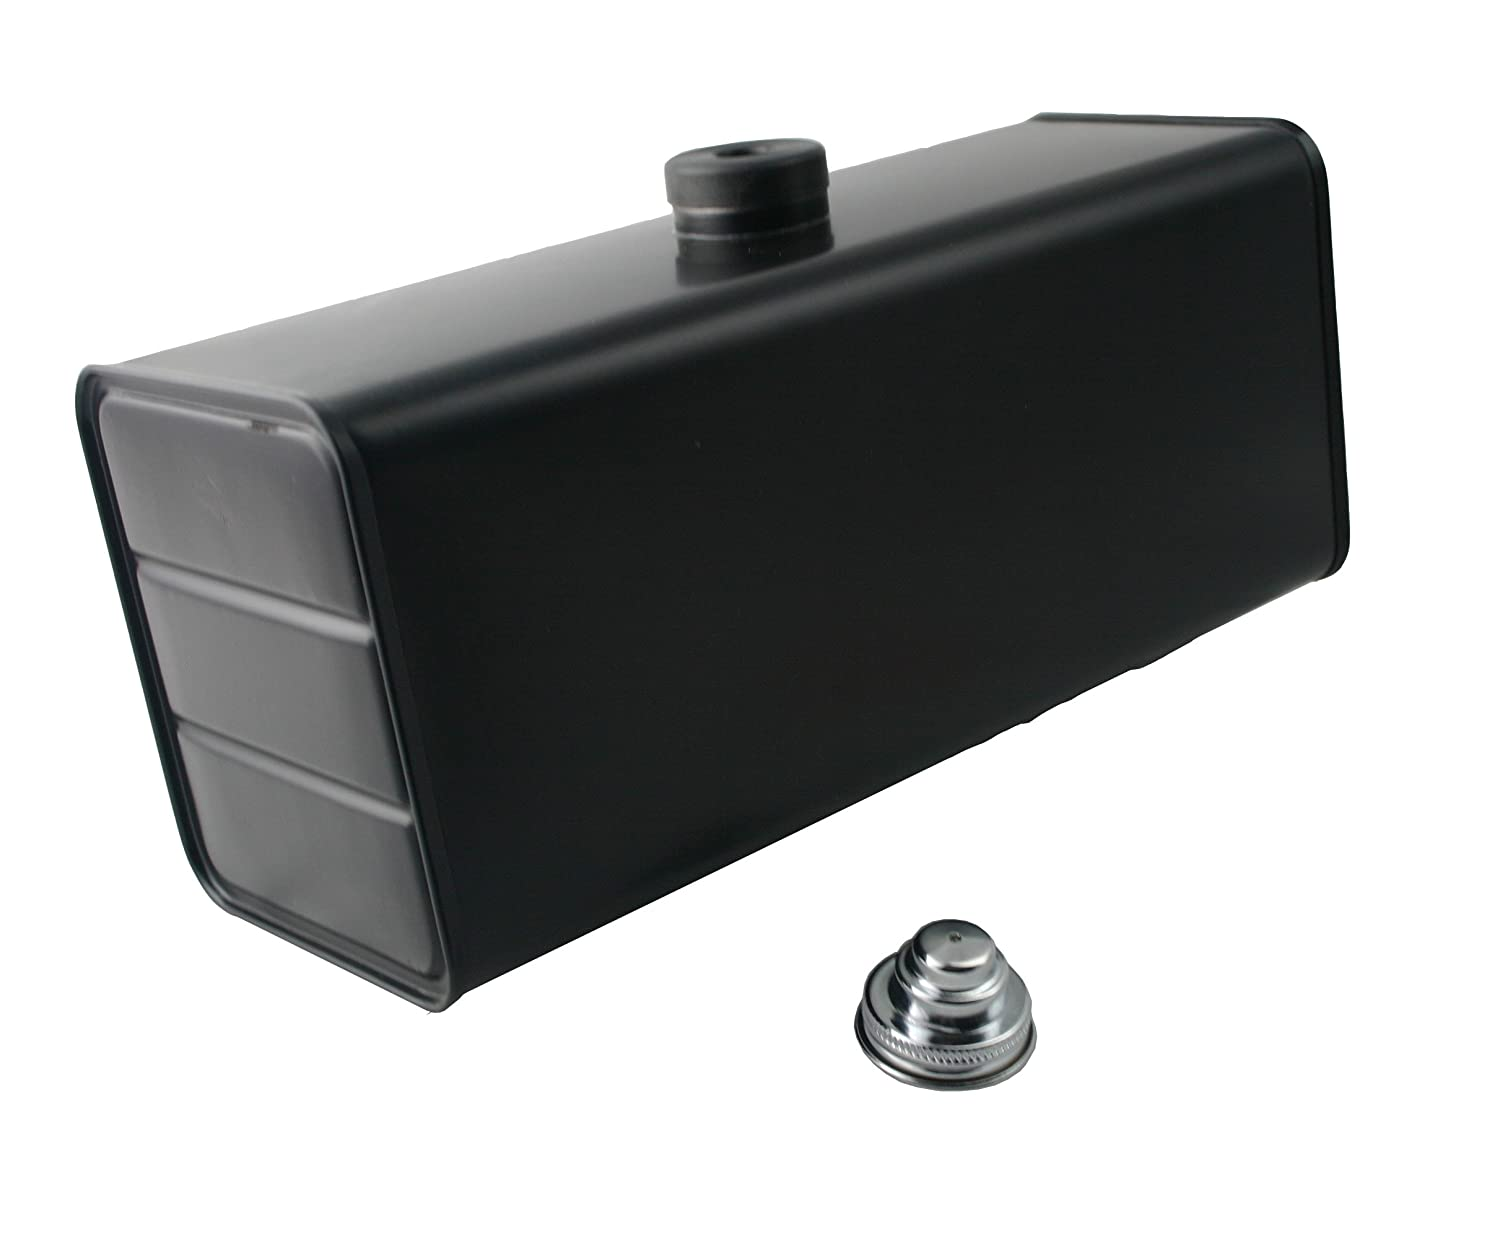 Briggs & Stratton 292415 8-quart Metal Fuel Tank and Cap for Remote Mounting